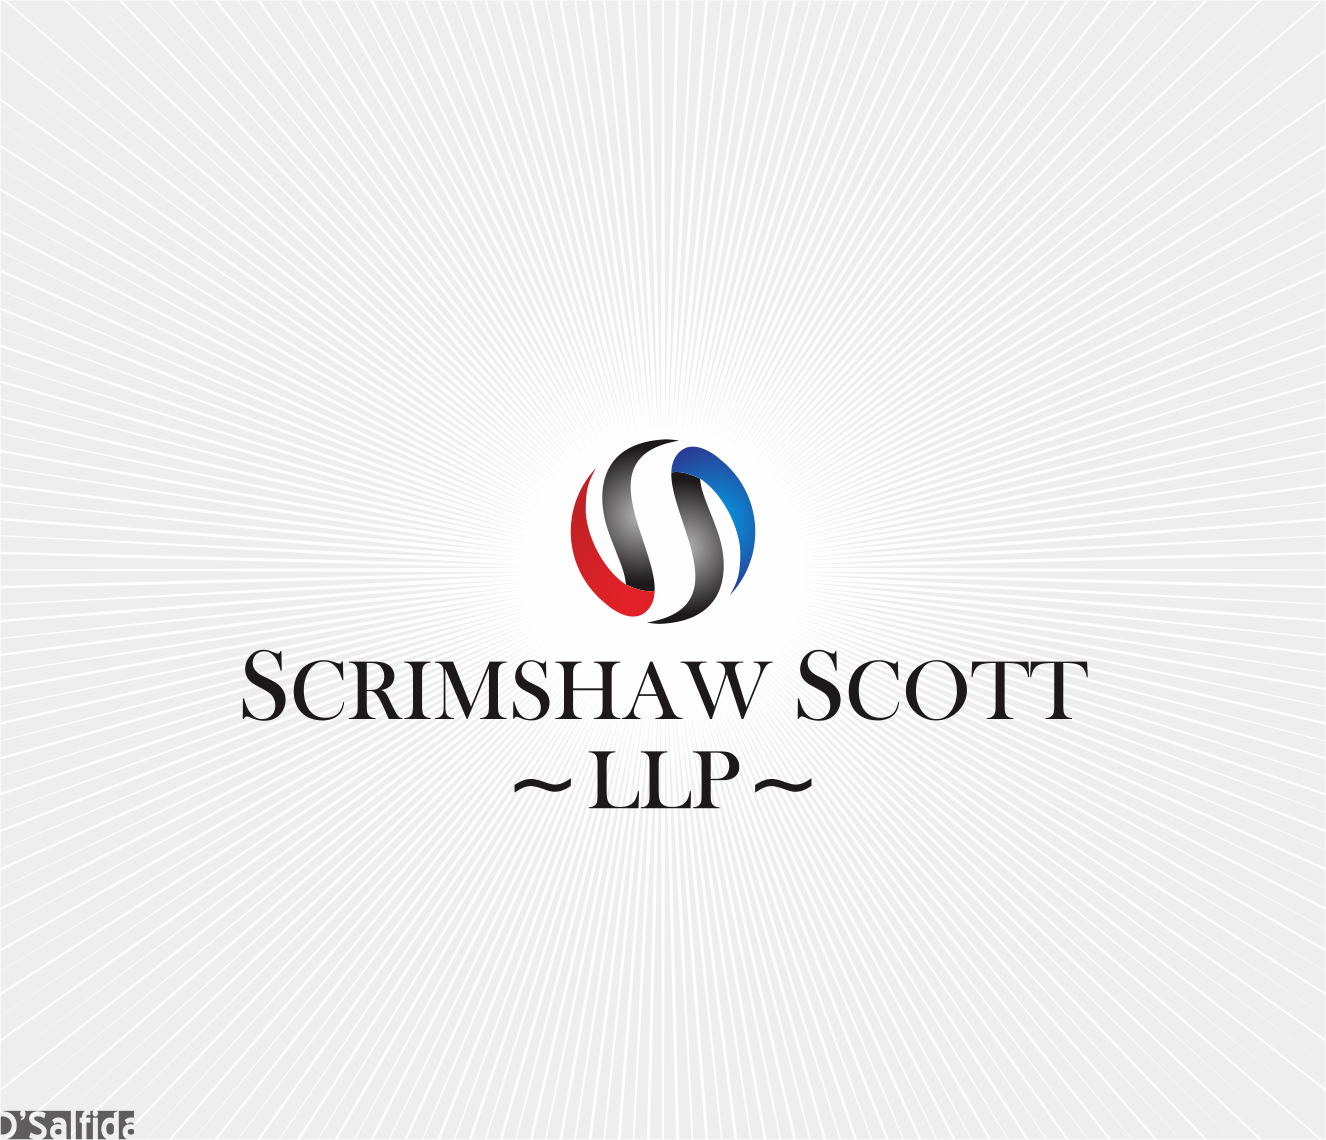 Logo Design by Armada Jamaluddin - Entry No. 113 in the Logo Design Contest Creative Logo Design for Scrimshaw Scott LLP.